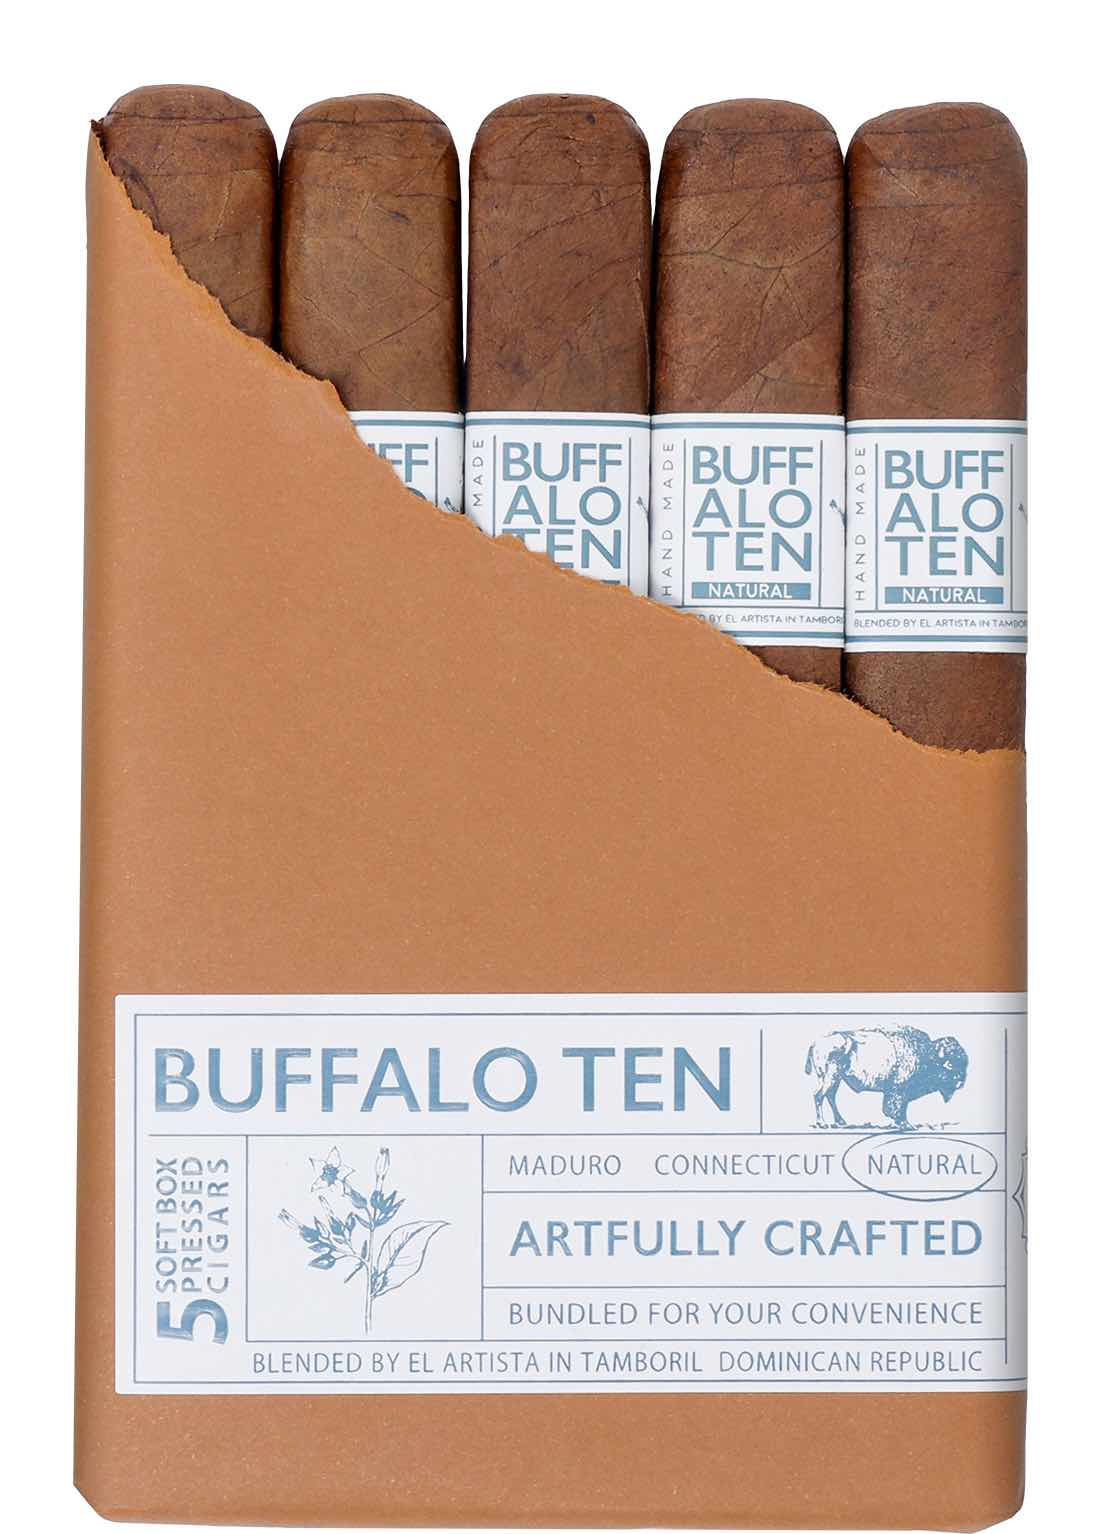 Cigar News: El Artista to Introduce Buffalo TEN Natural